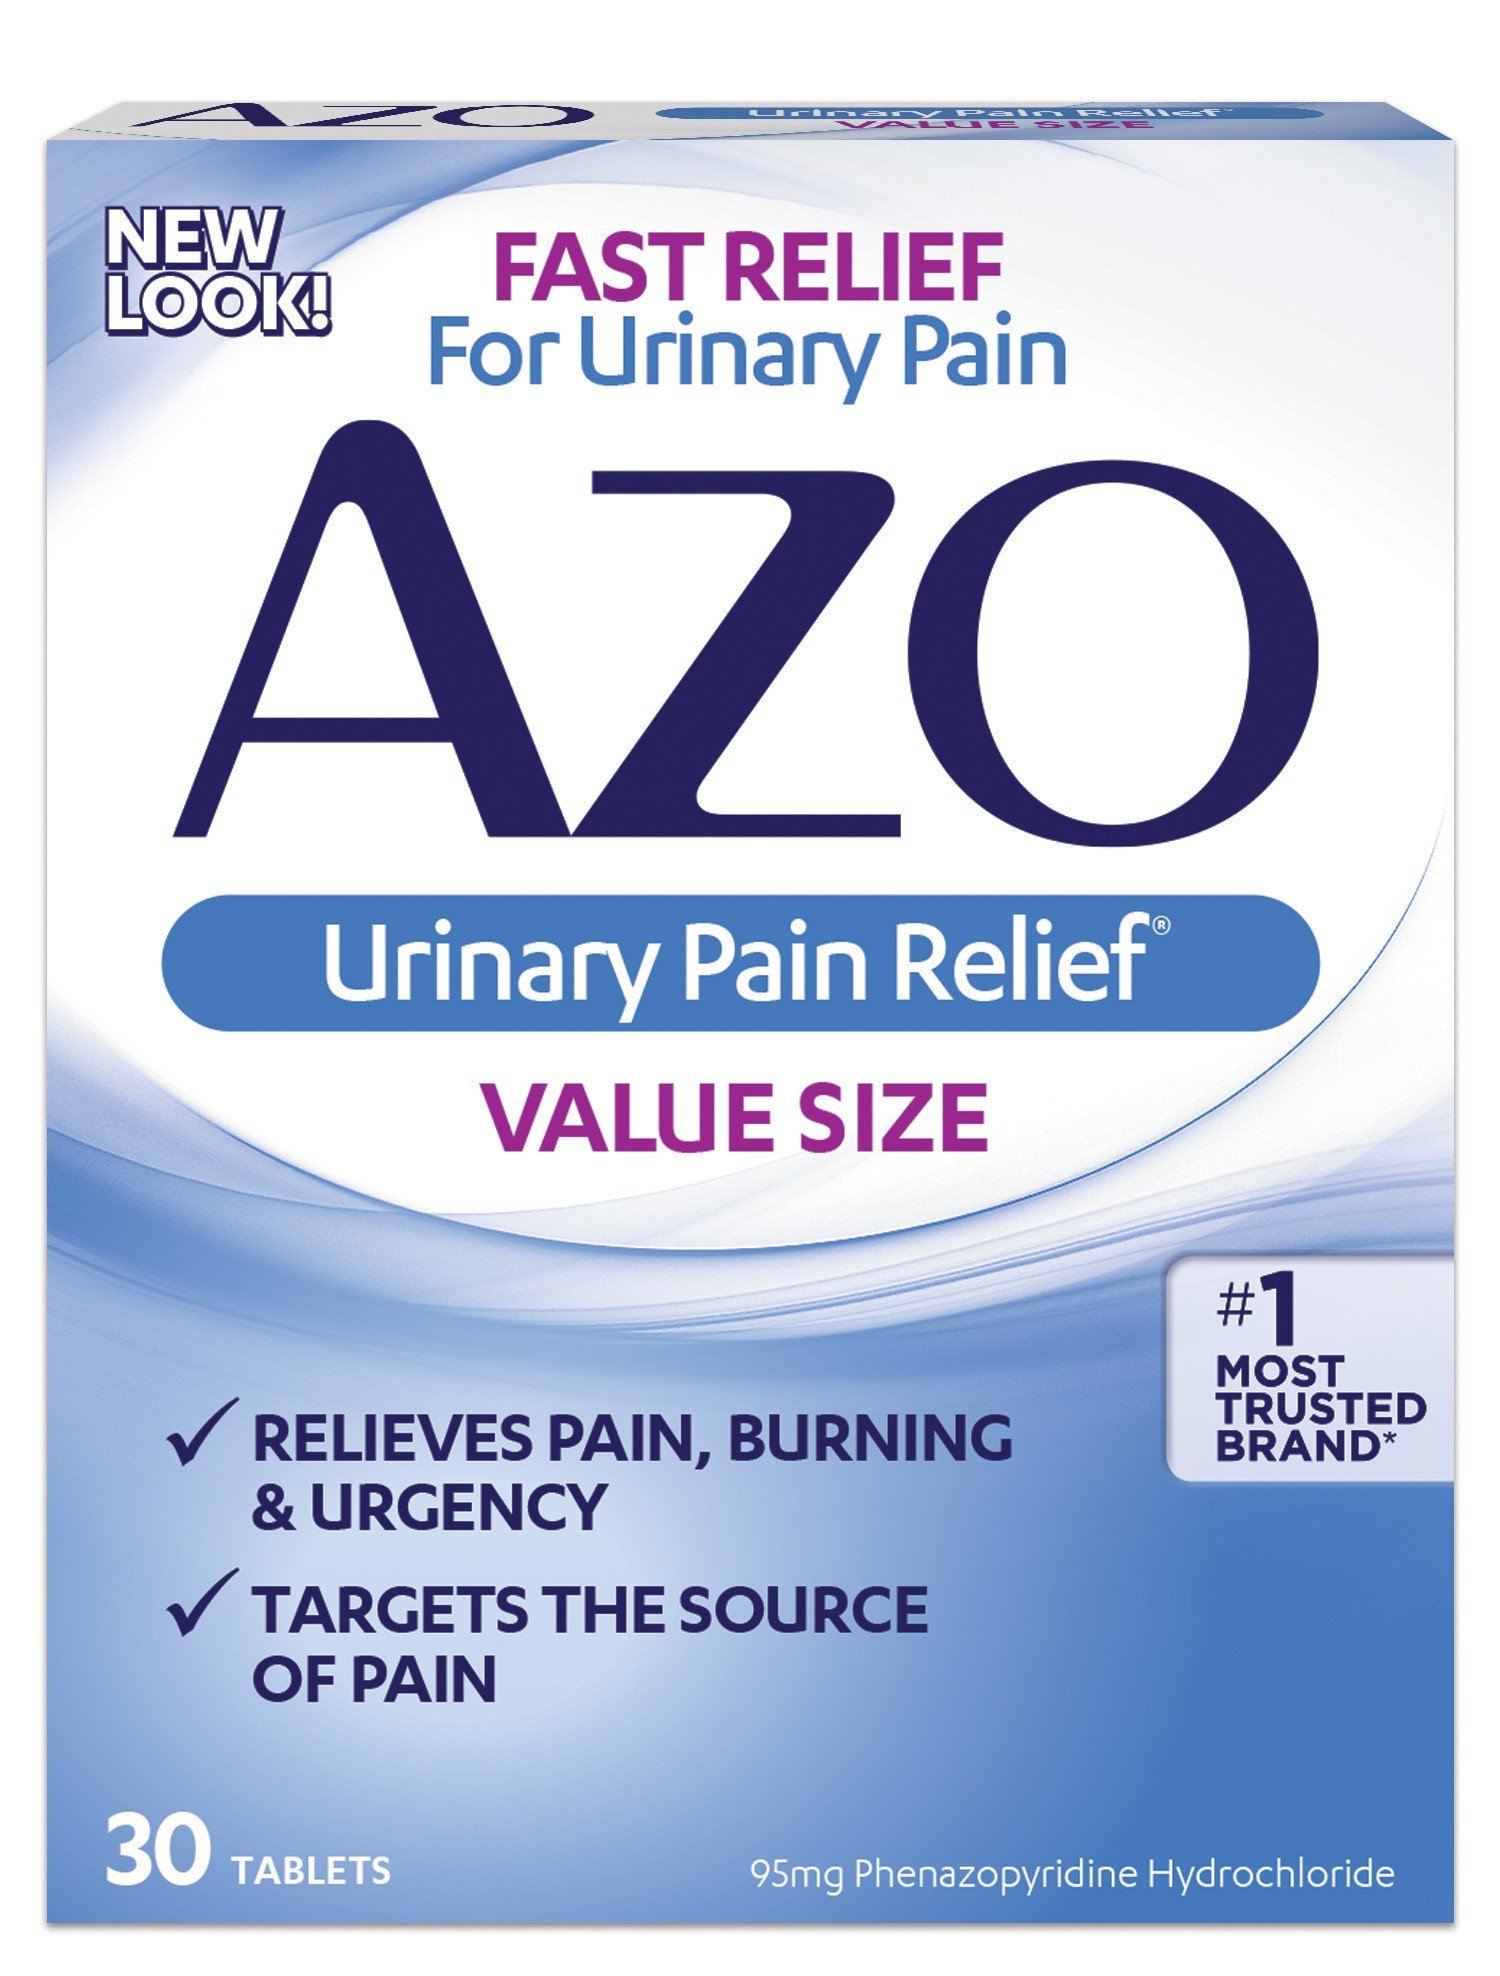 AZO Urinary Pain Relief Value Size |with Phenazopyridine Hydrochloride |Fast Relief | Relieves UTI Pain,Burning & Urgency | Targets The Source of Pain | #1 Most Trusted Brand | 30 Tablets | Pack of 3 by AZO